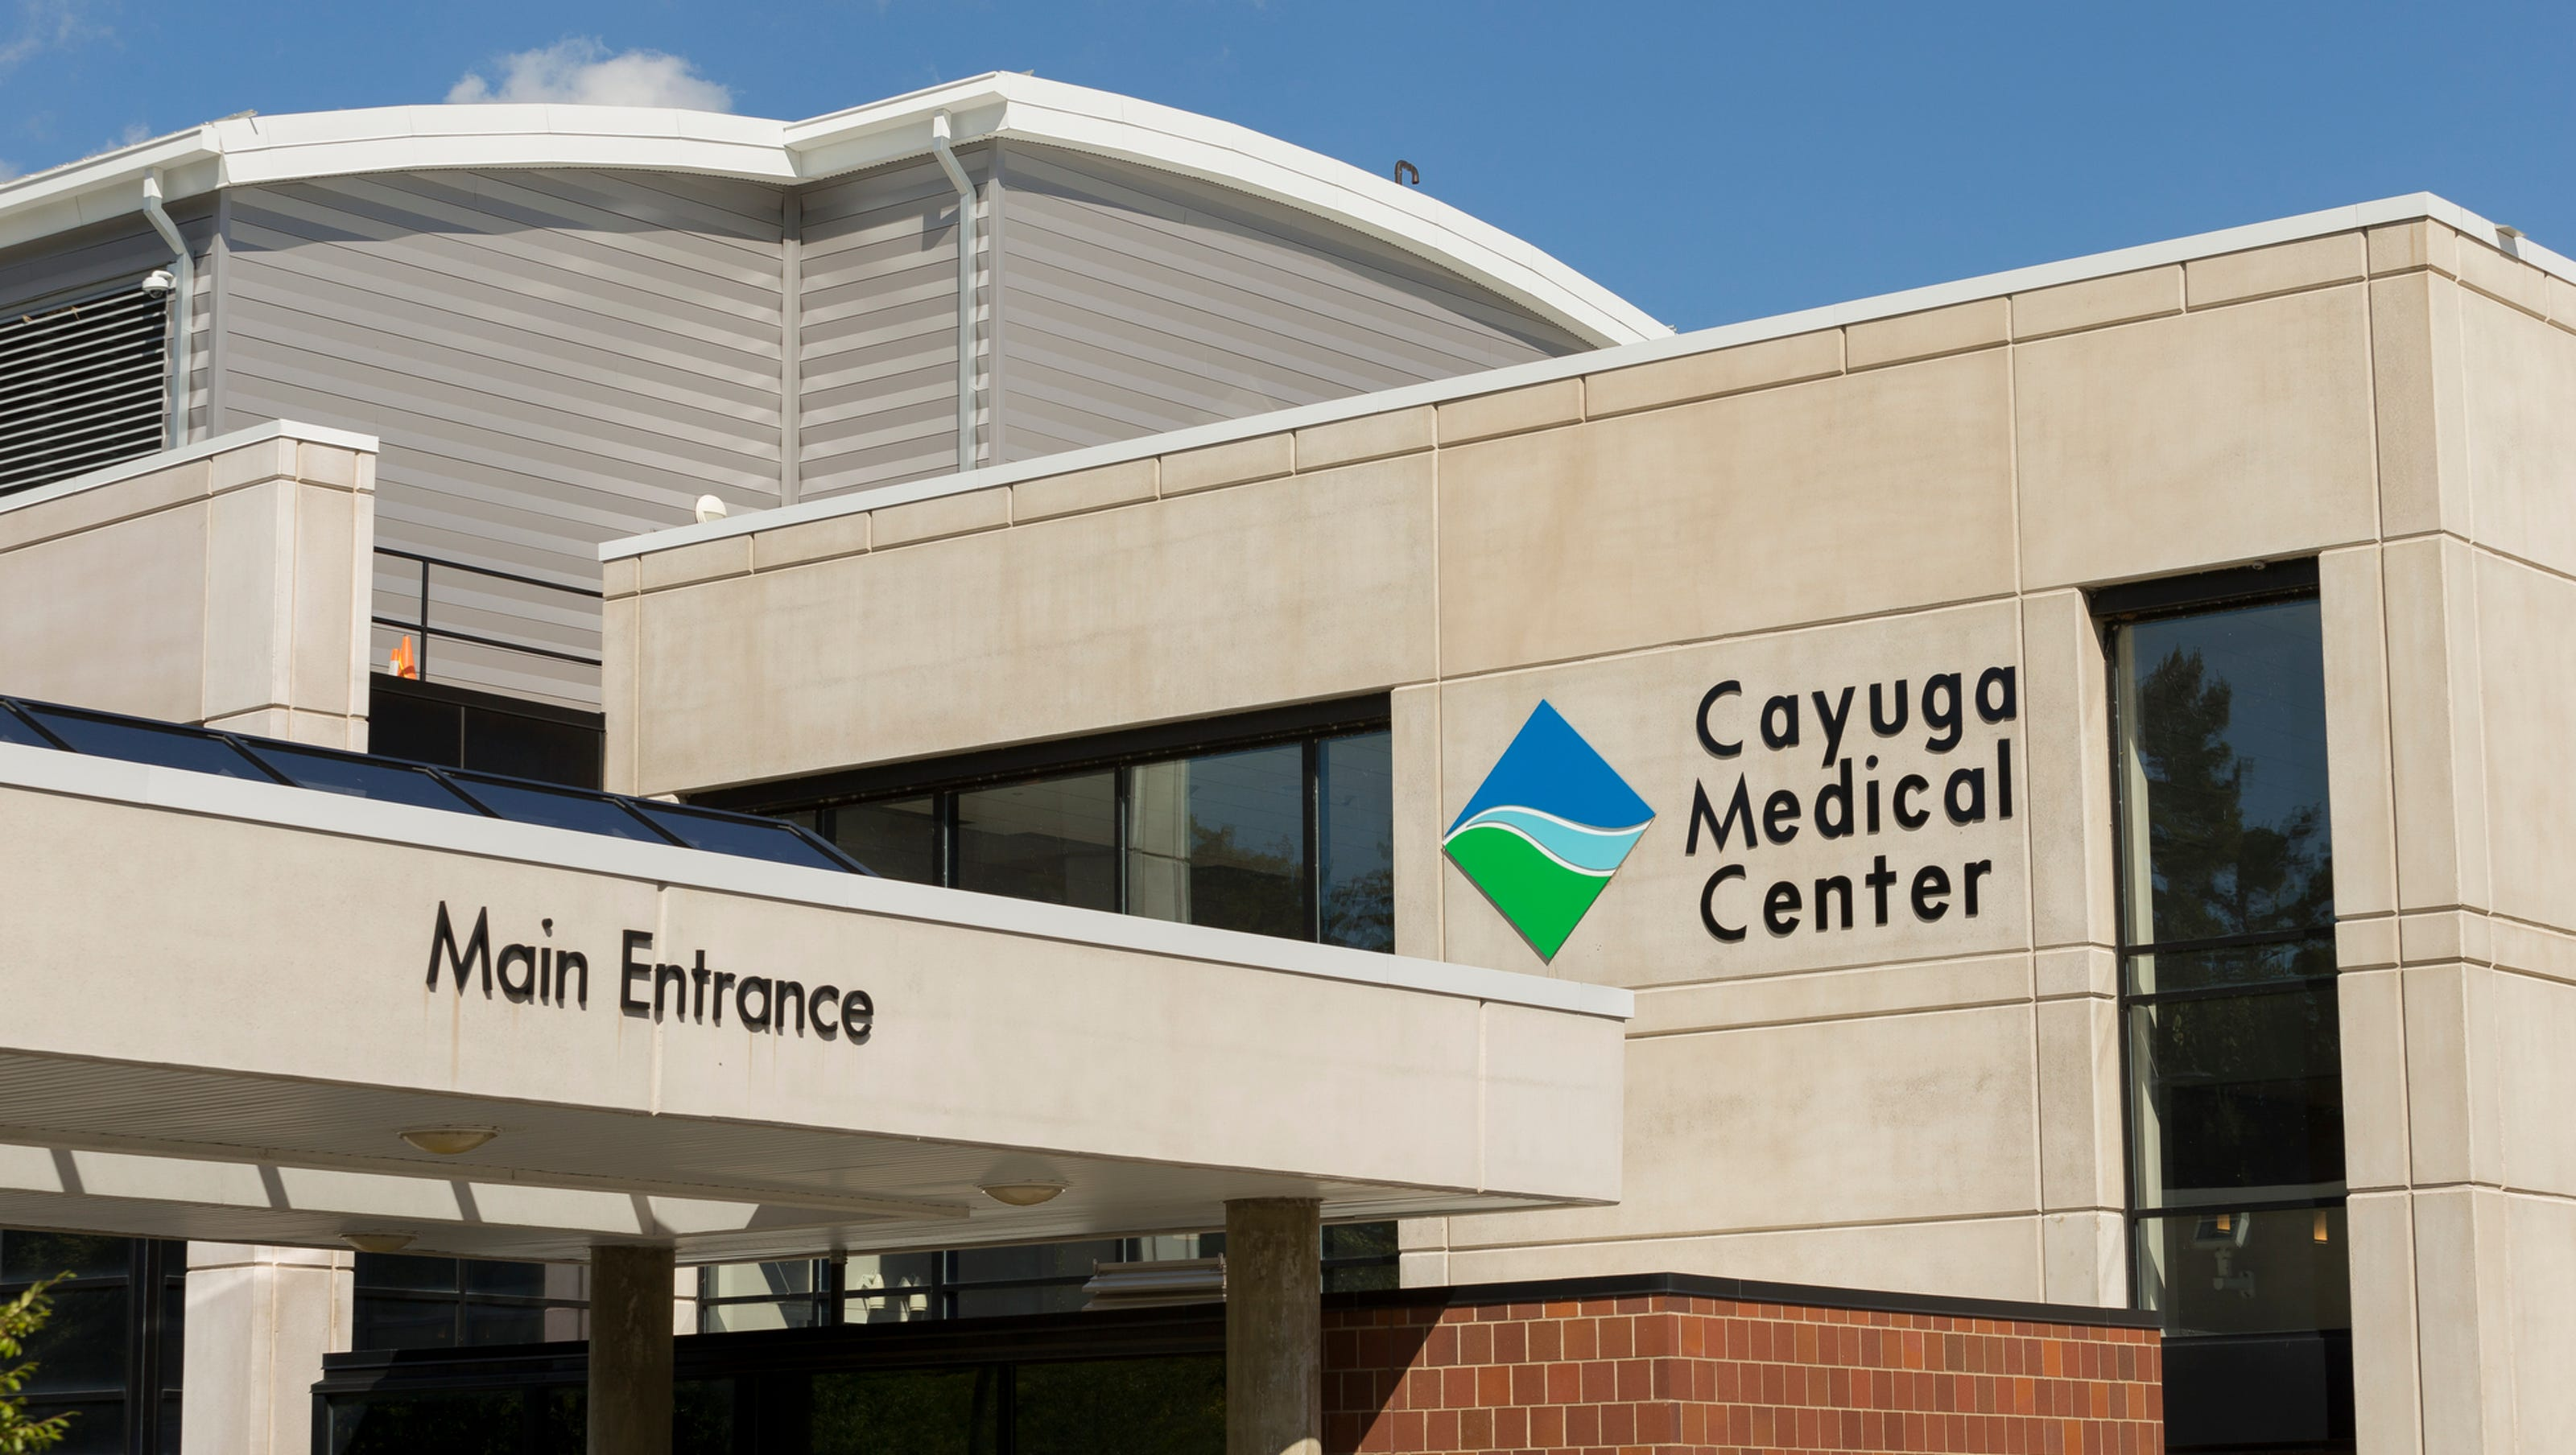 DECISION: Cayuga Medical Center violated federal labor law